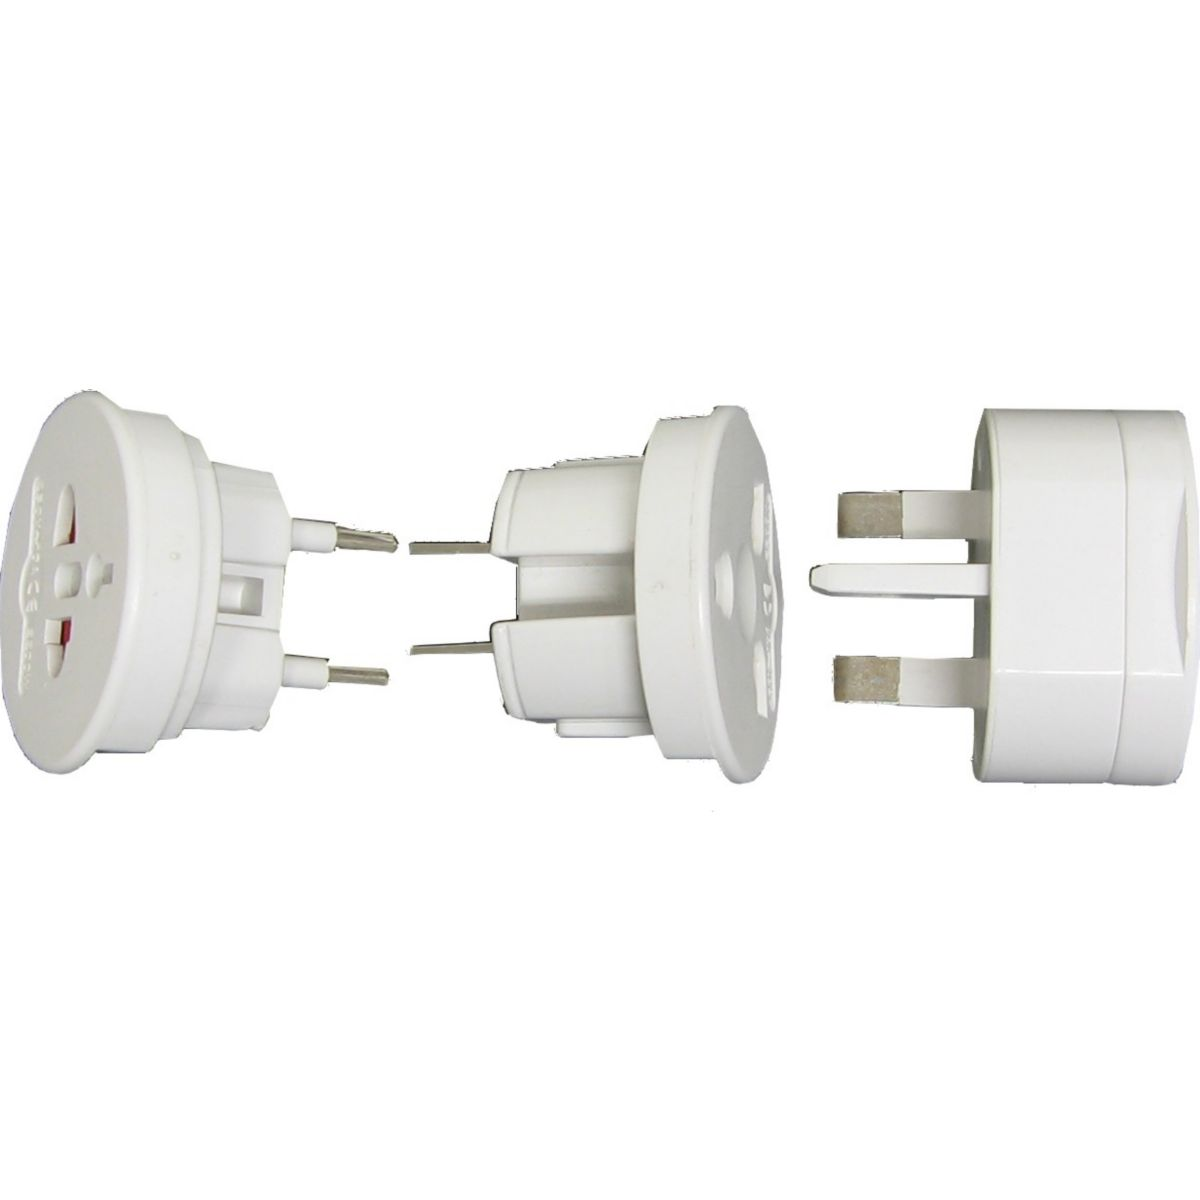 Adaptateur sc lot de 3 plugs (photo)